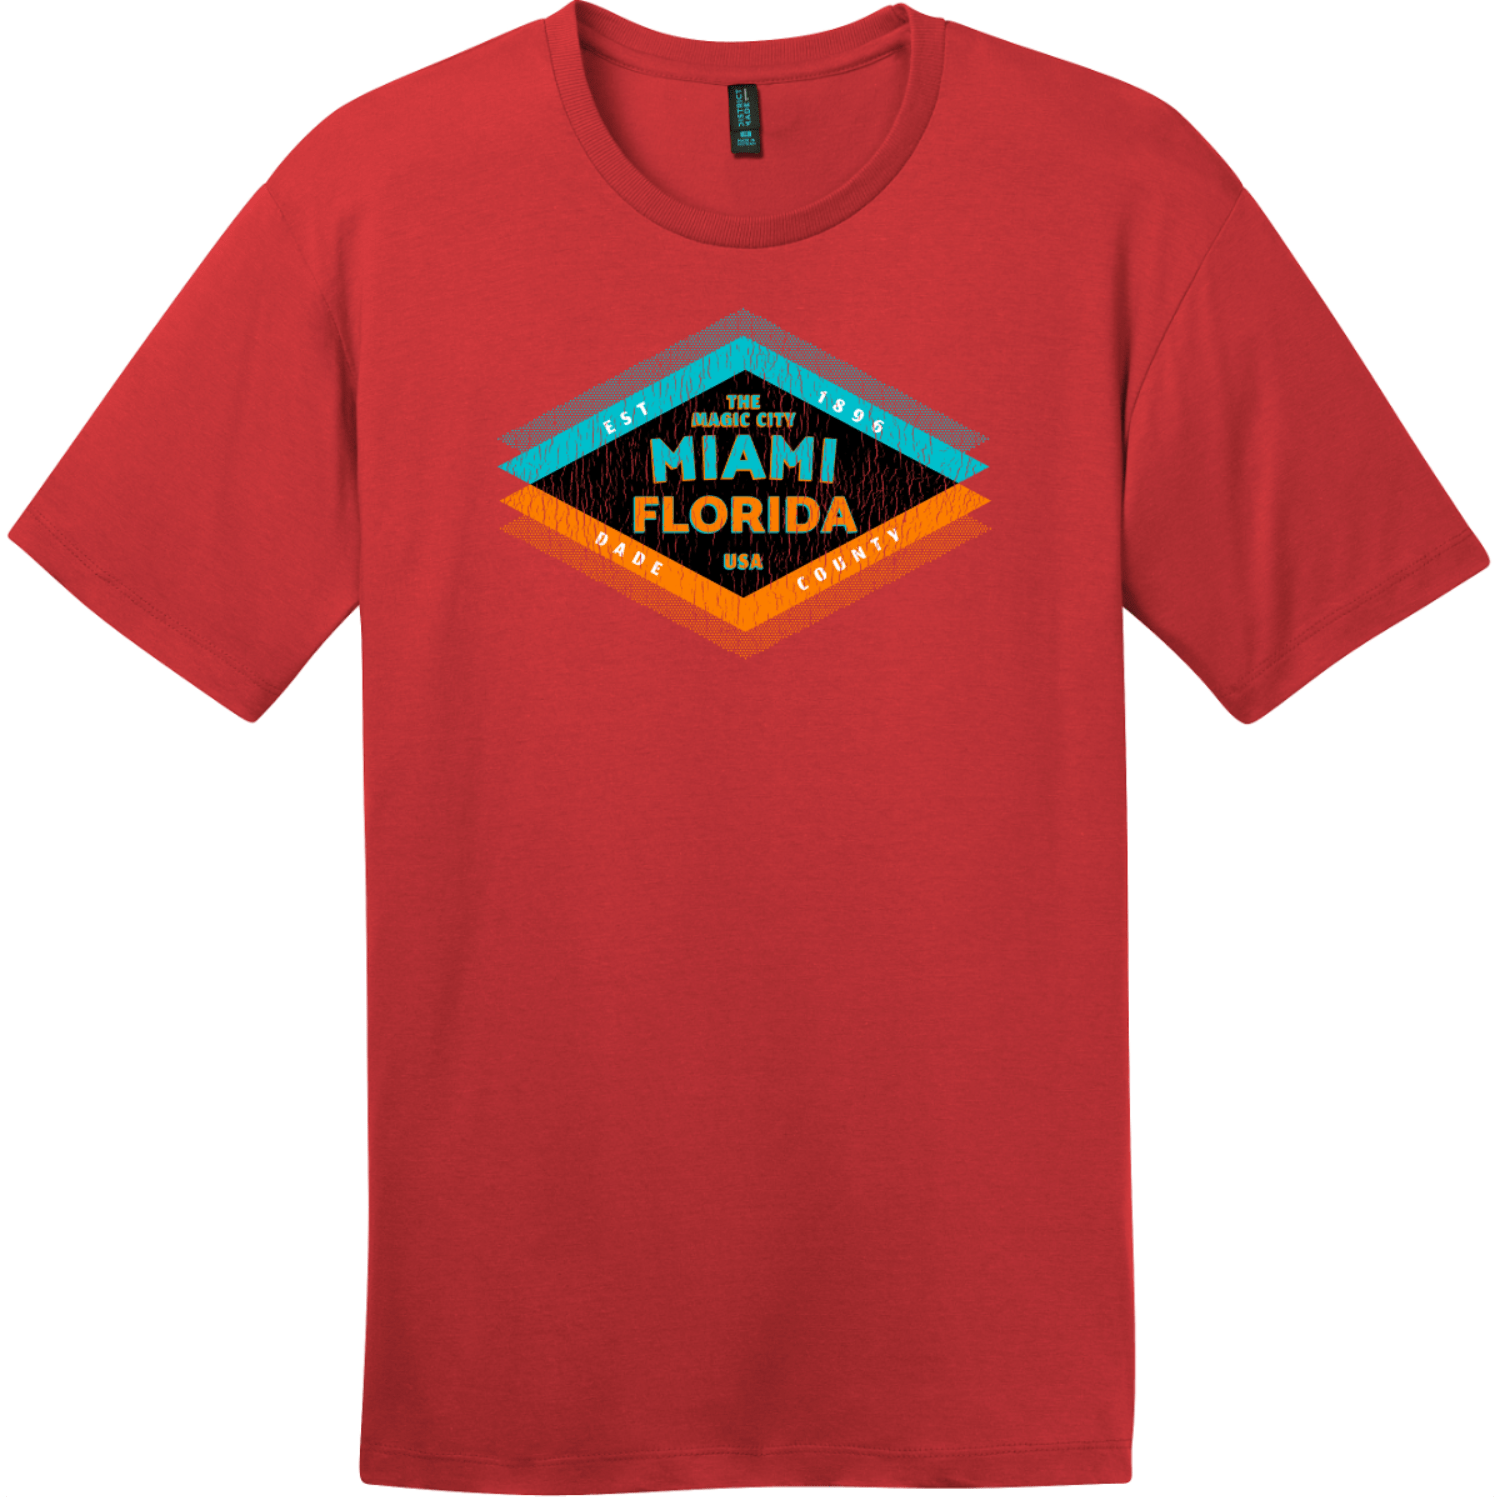 Miami Florida The Magic City T-Shirt Classic Red District Perfect Weight Tee DT104